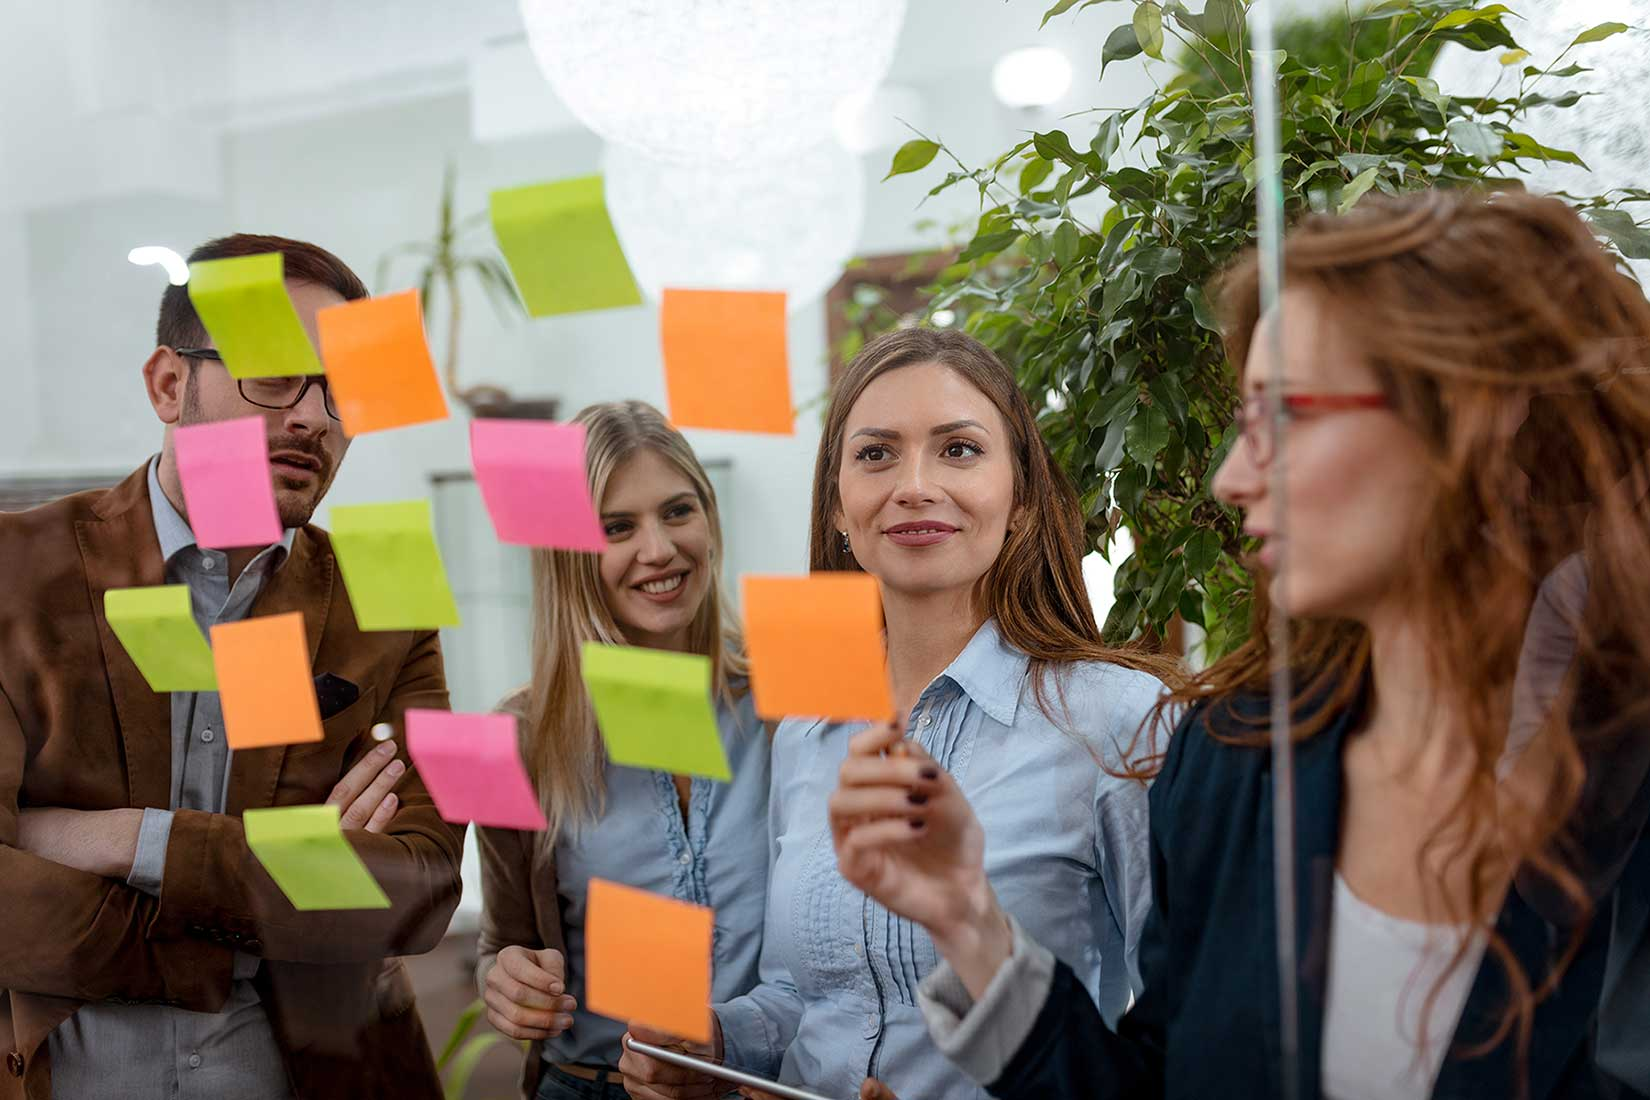 image of a sustainability consultant working with a team of people using colorful post-it notes